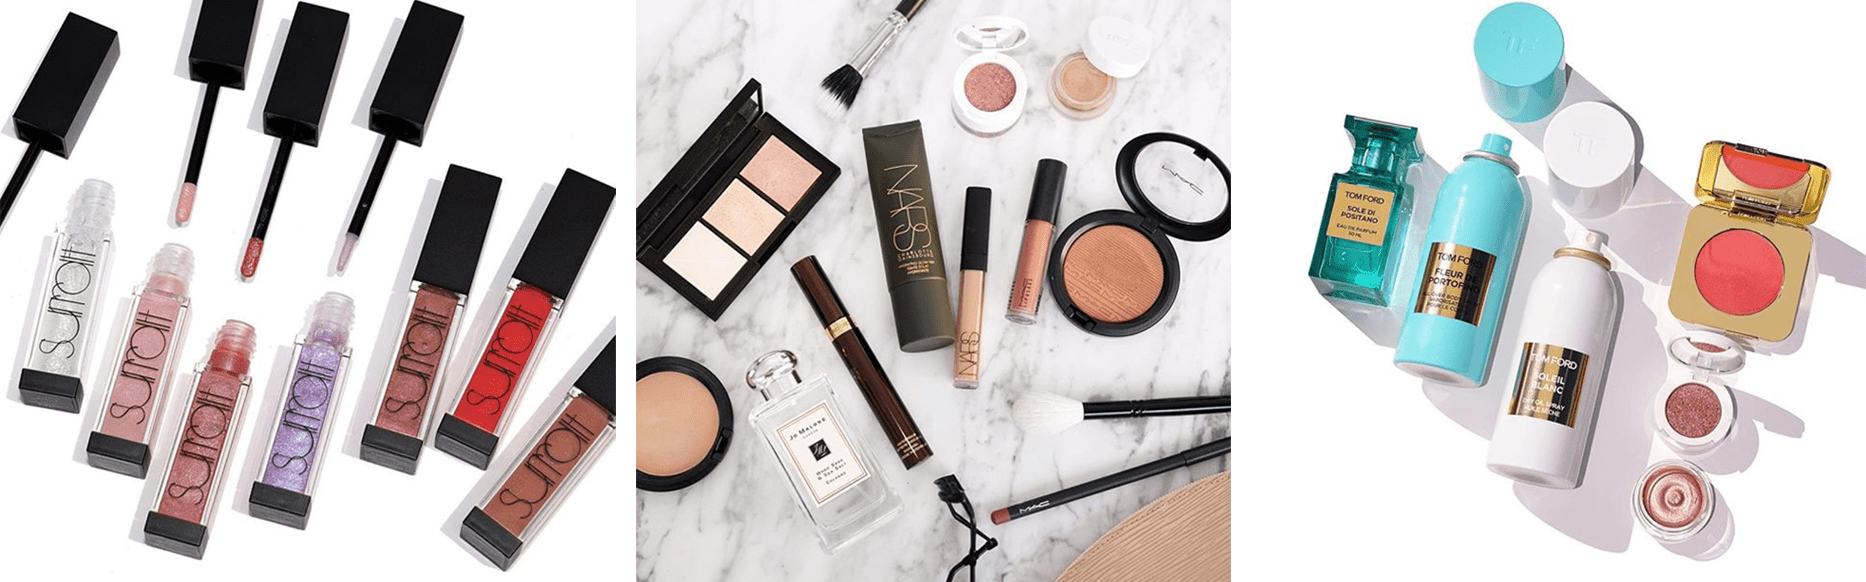 5 IG's to Follow for Makeup Inspiration - PLANOLY Blog 2